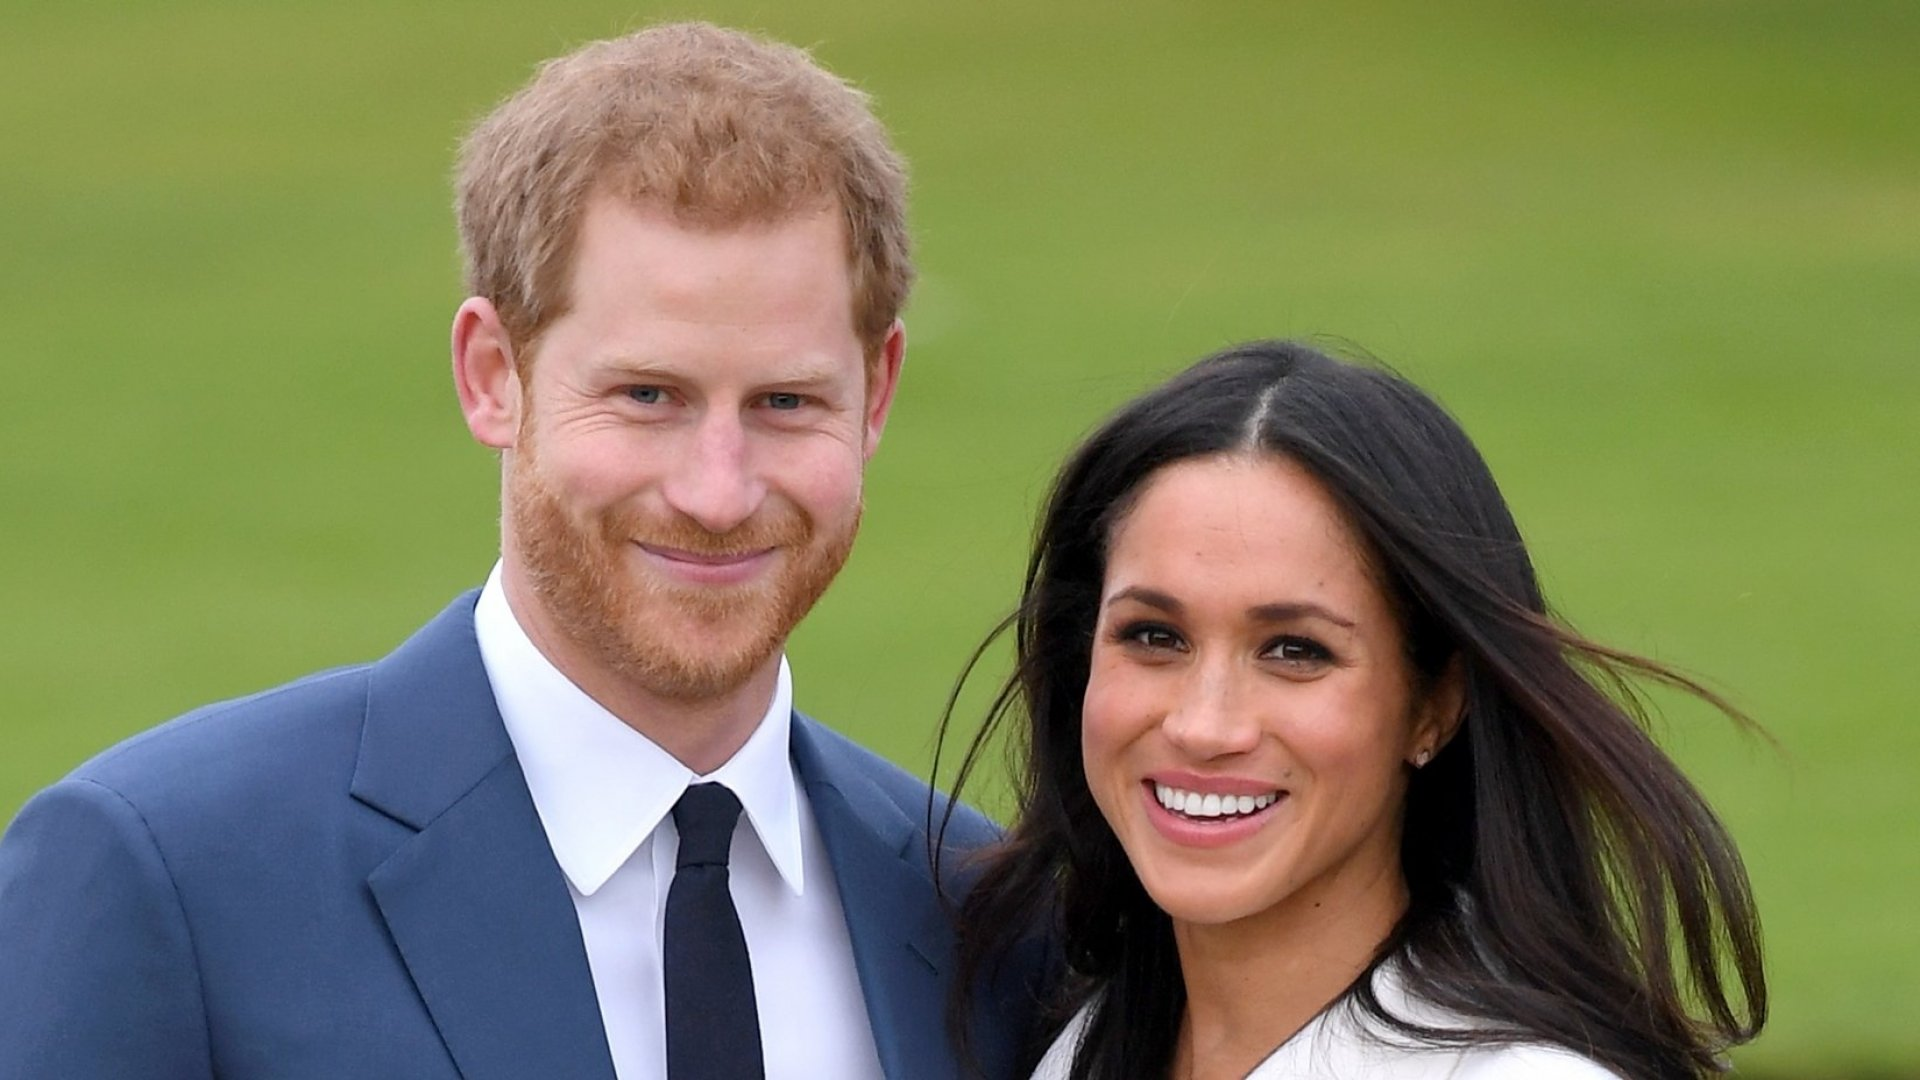 This Unlikely Industry Is Getting a Boost From the Royal Wedding